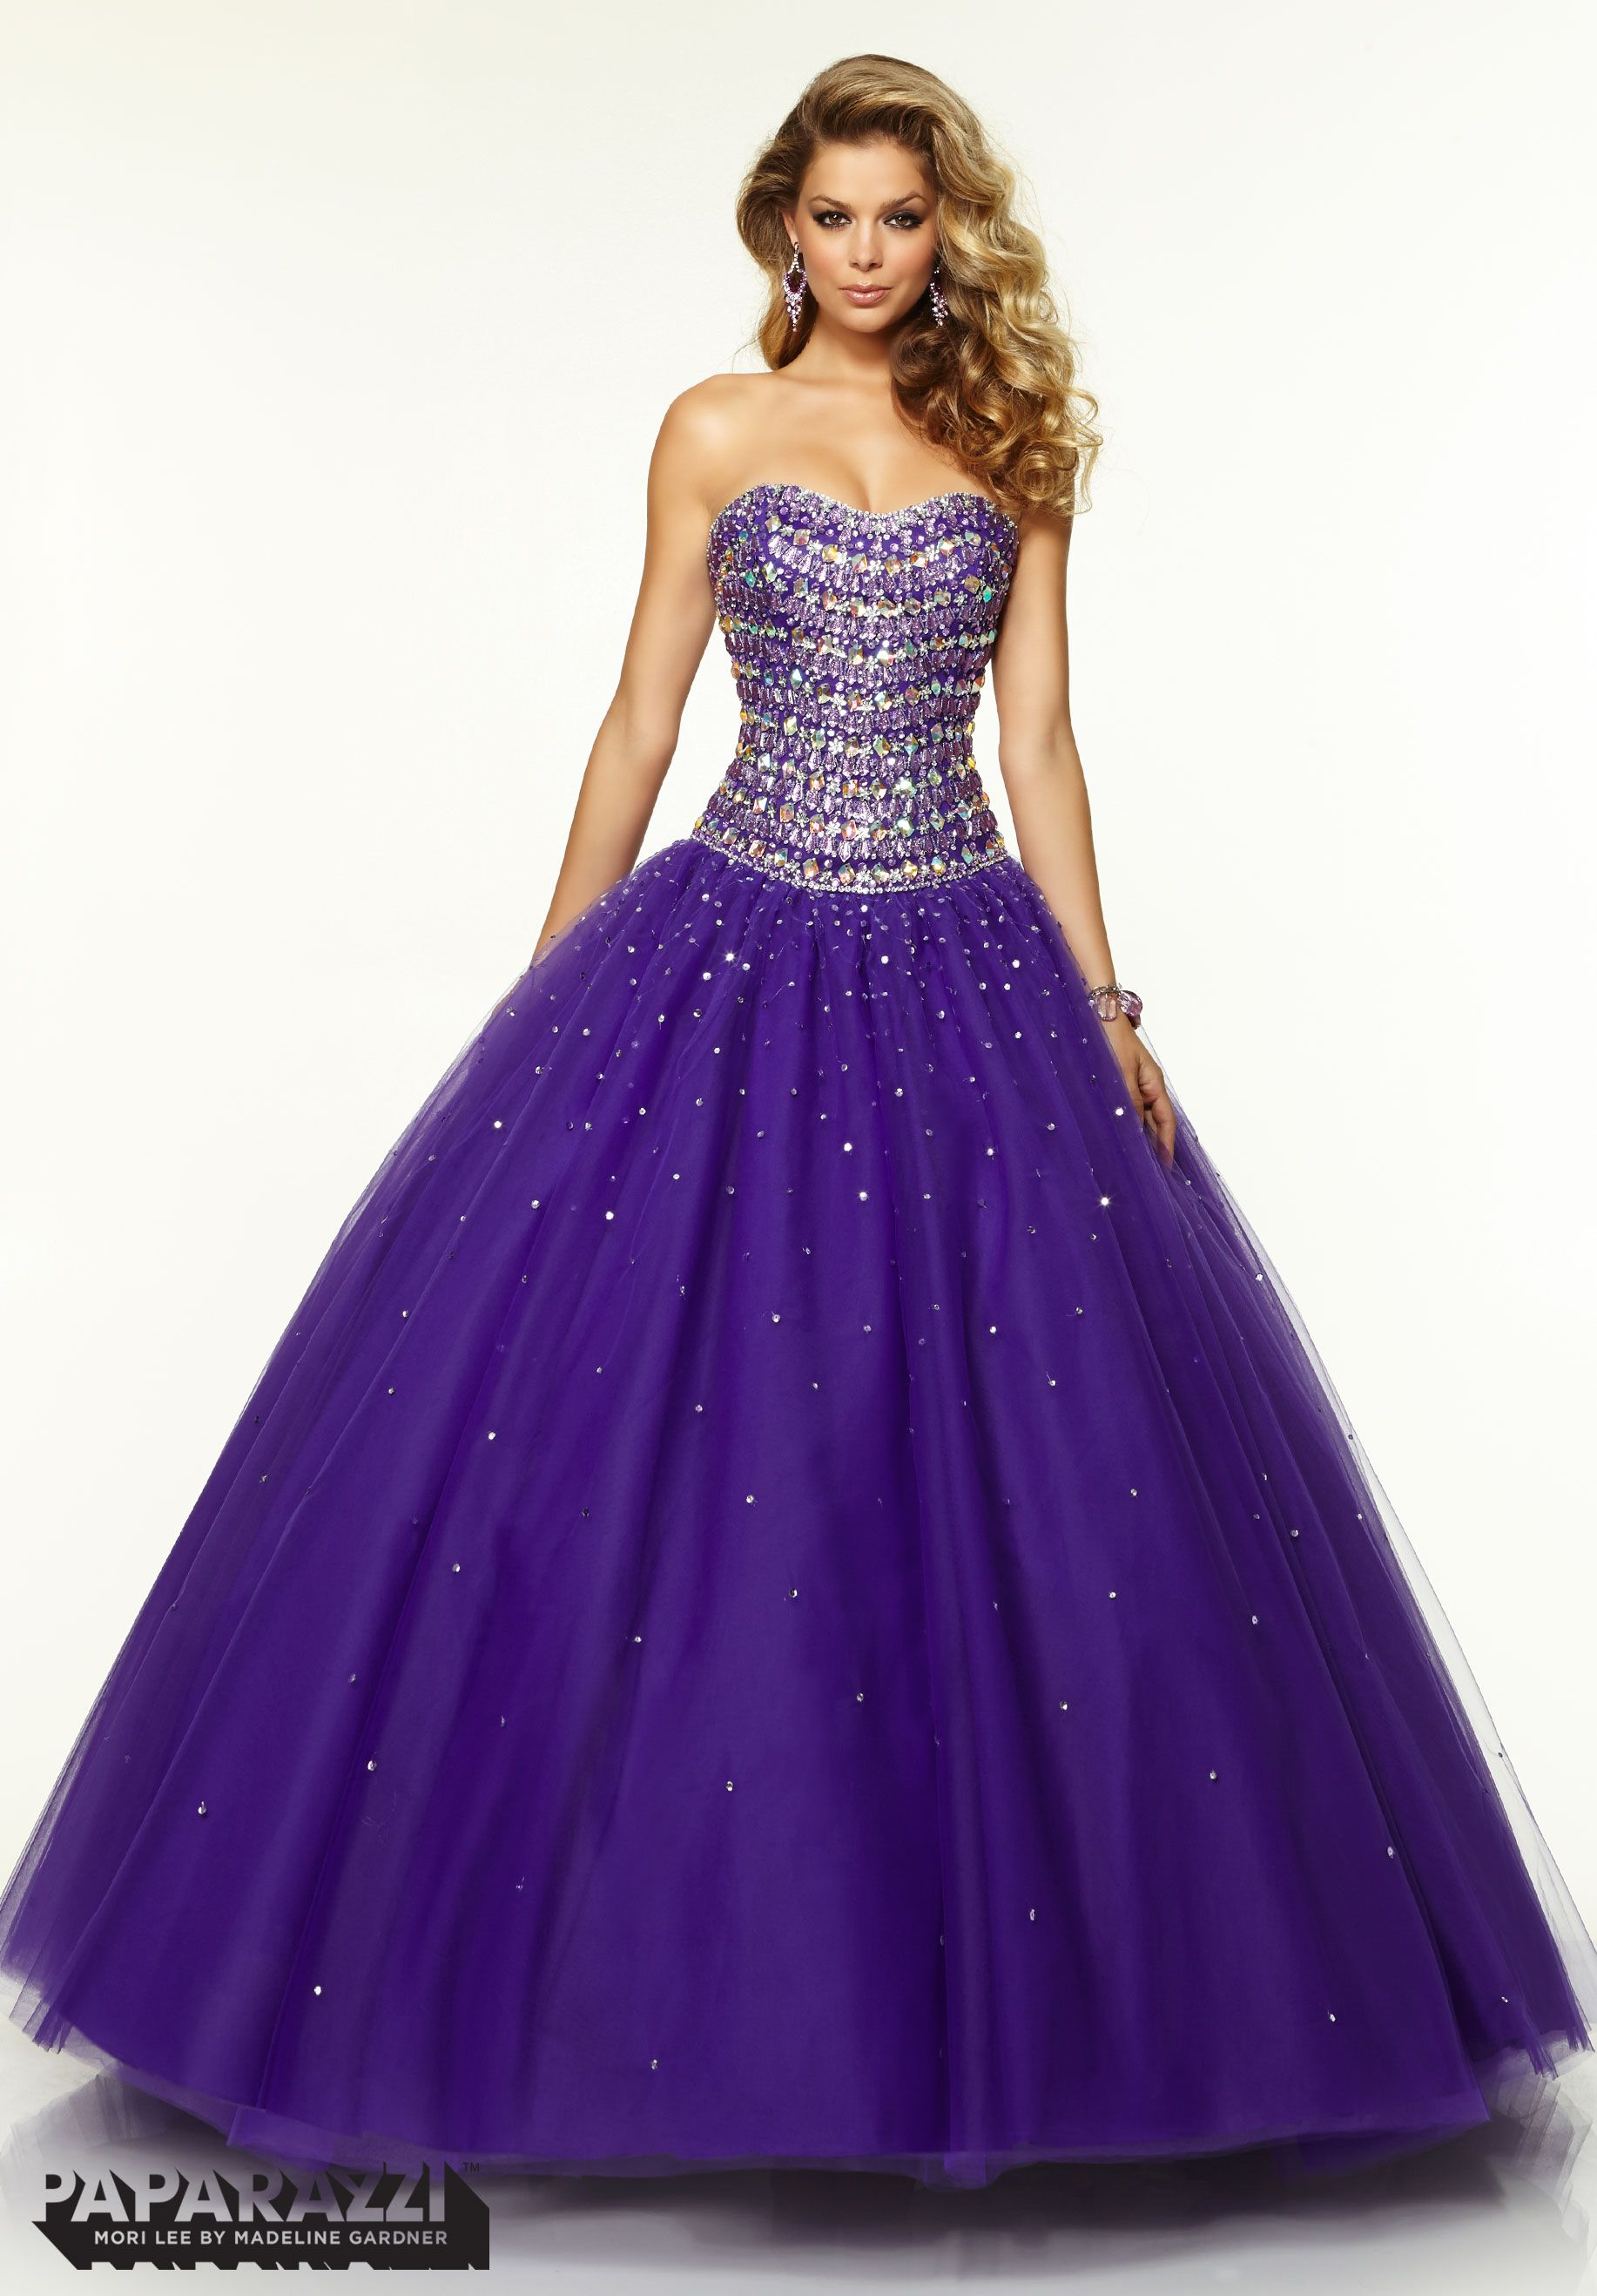 Prom Dresses / Gowns Style 97094: Jeweled Beading on Tulle Ballgown ...